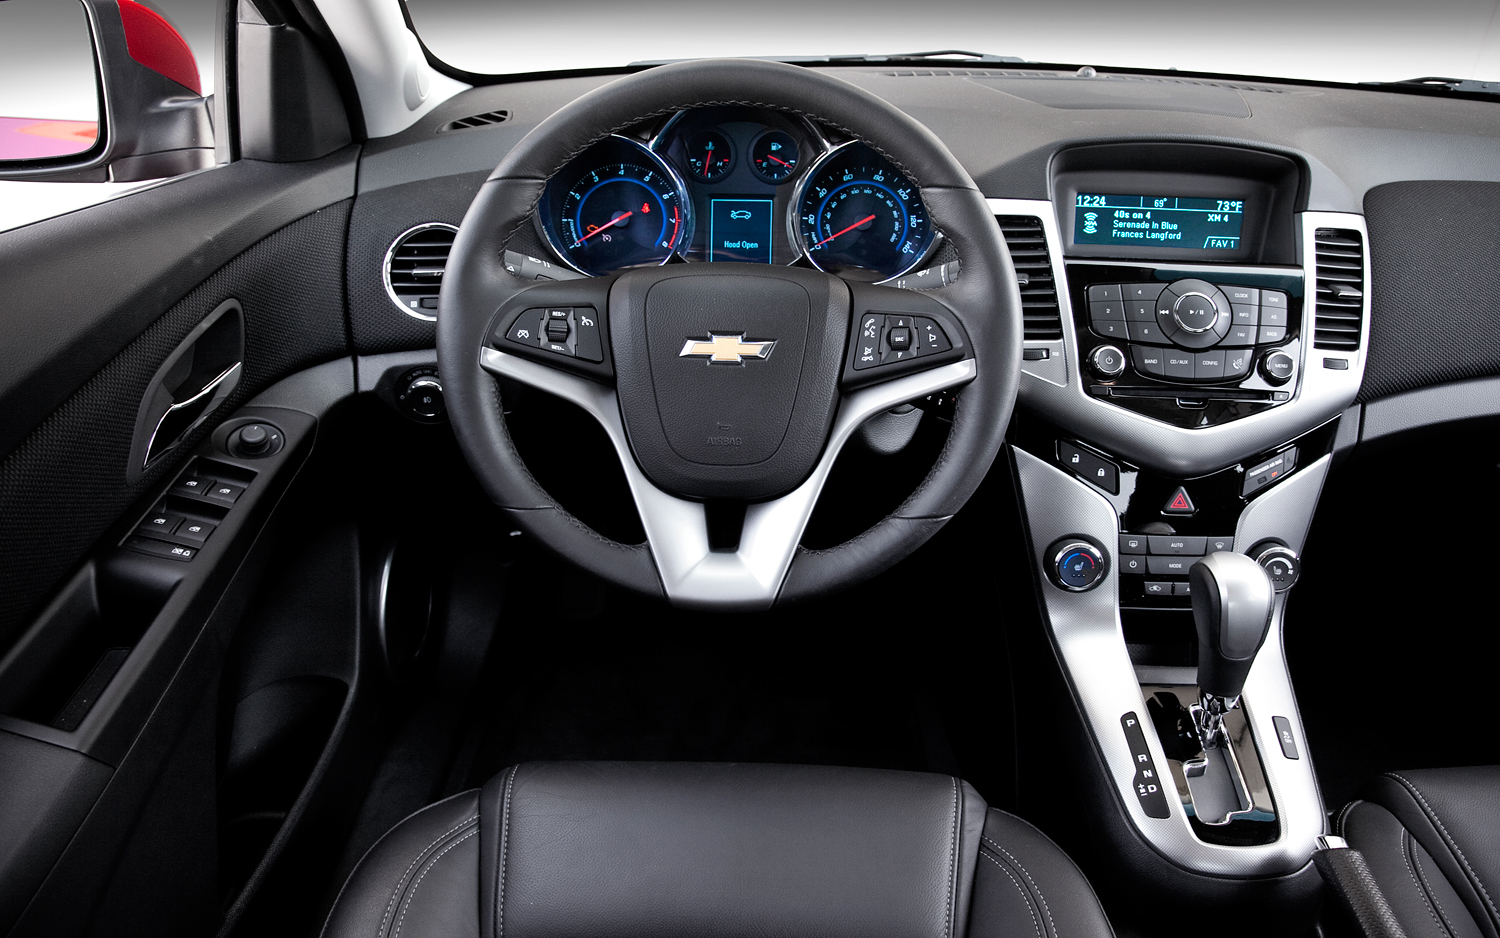 Chevy 2011 chevy cruze specs : Cruze » 2012 Chevy Cruze Specs - Old Chevy Photos Collection, All ...